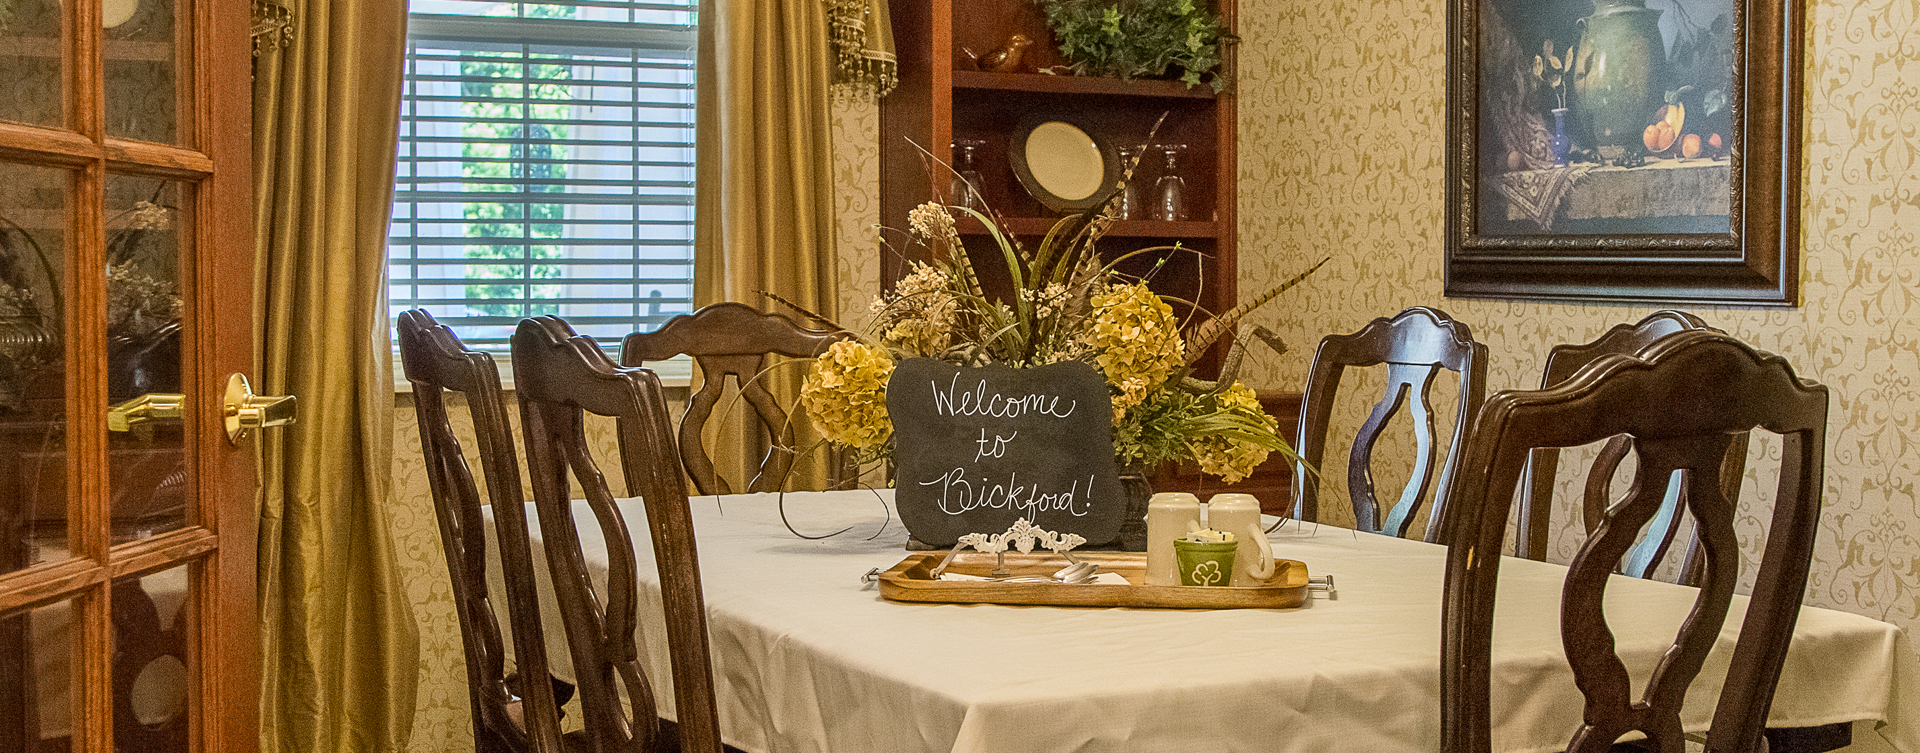 Food is best when shared with family and friends in the private dining room at Bickford of Moline